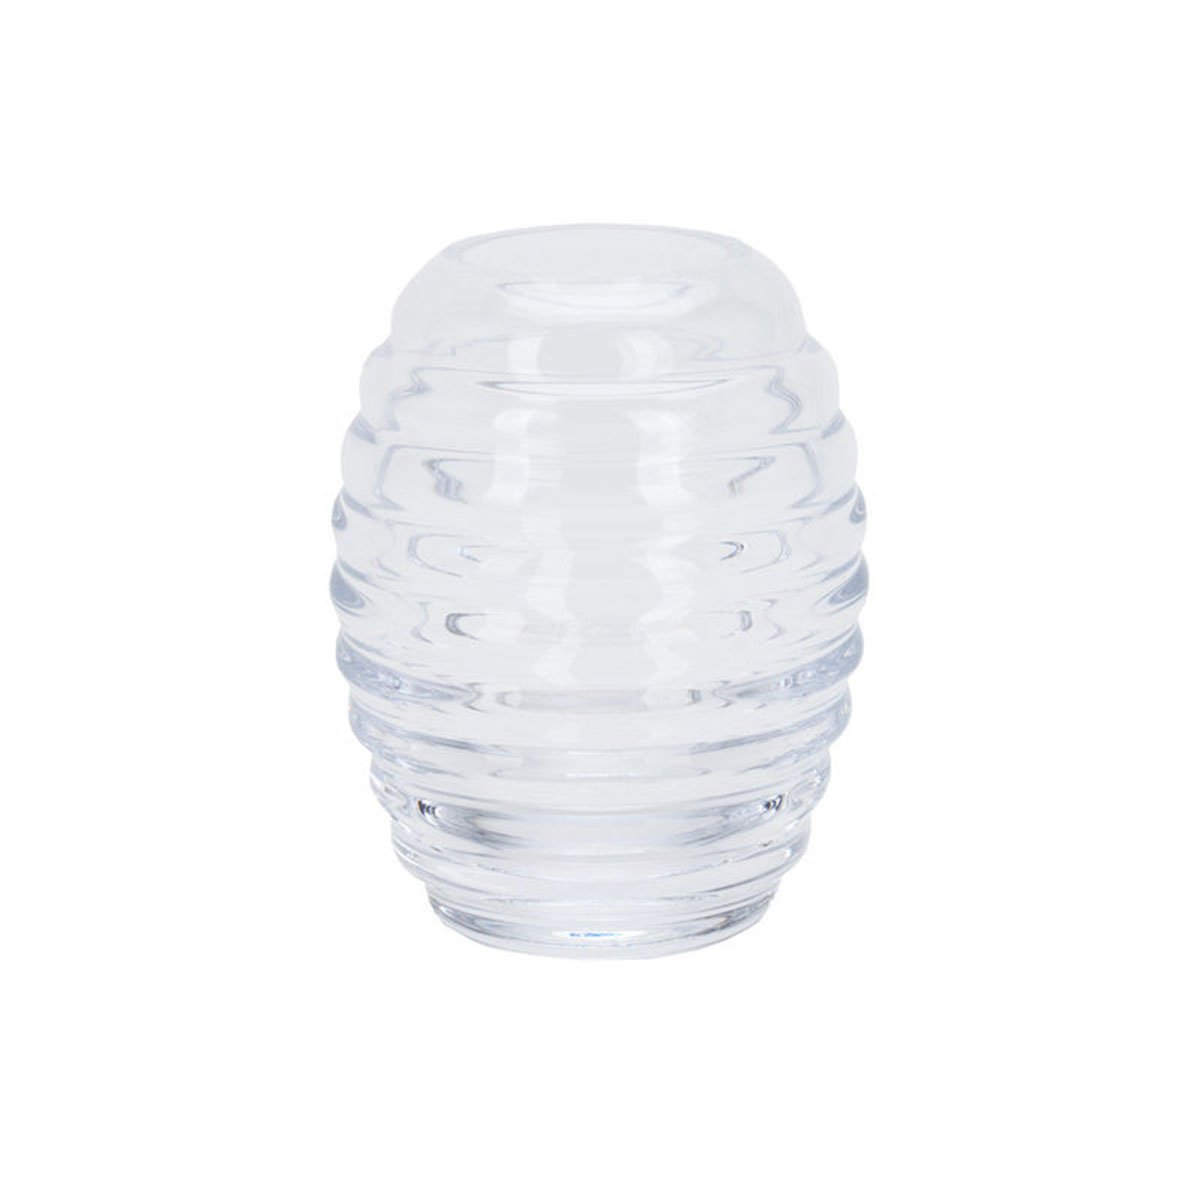 Alessi Replacement Glass for the Honey Pot or Sugar Castor